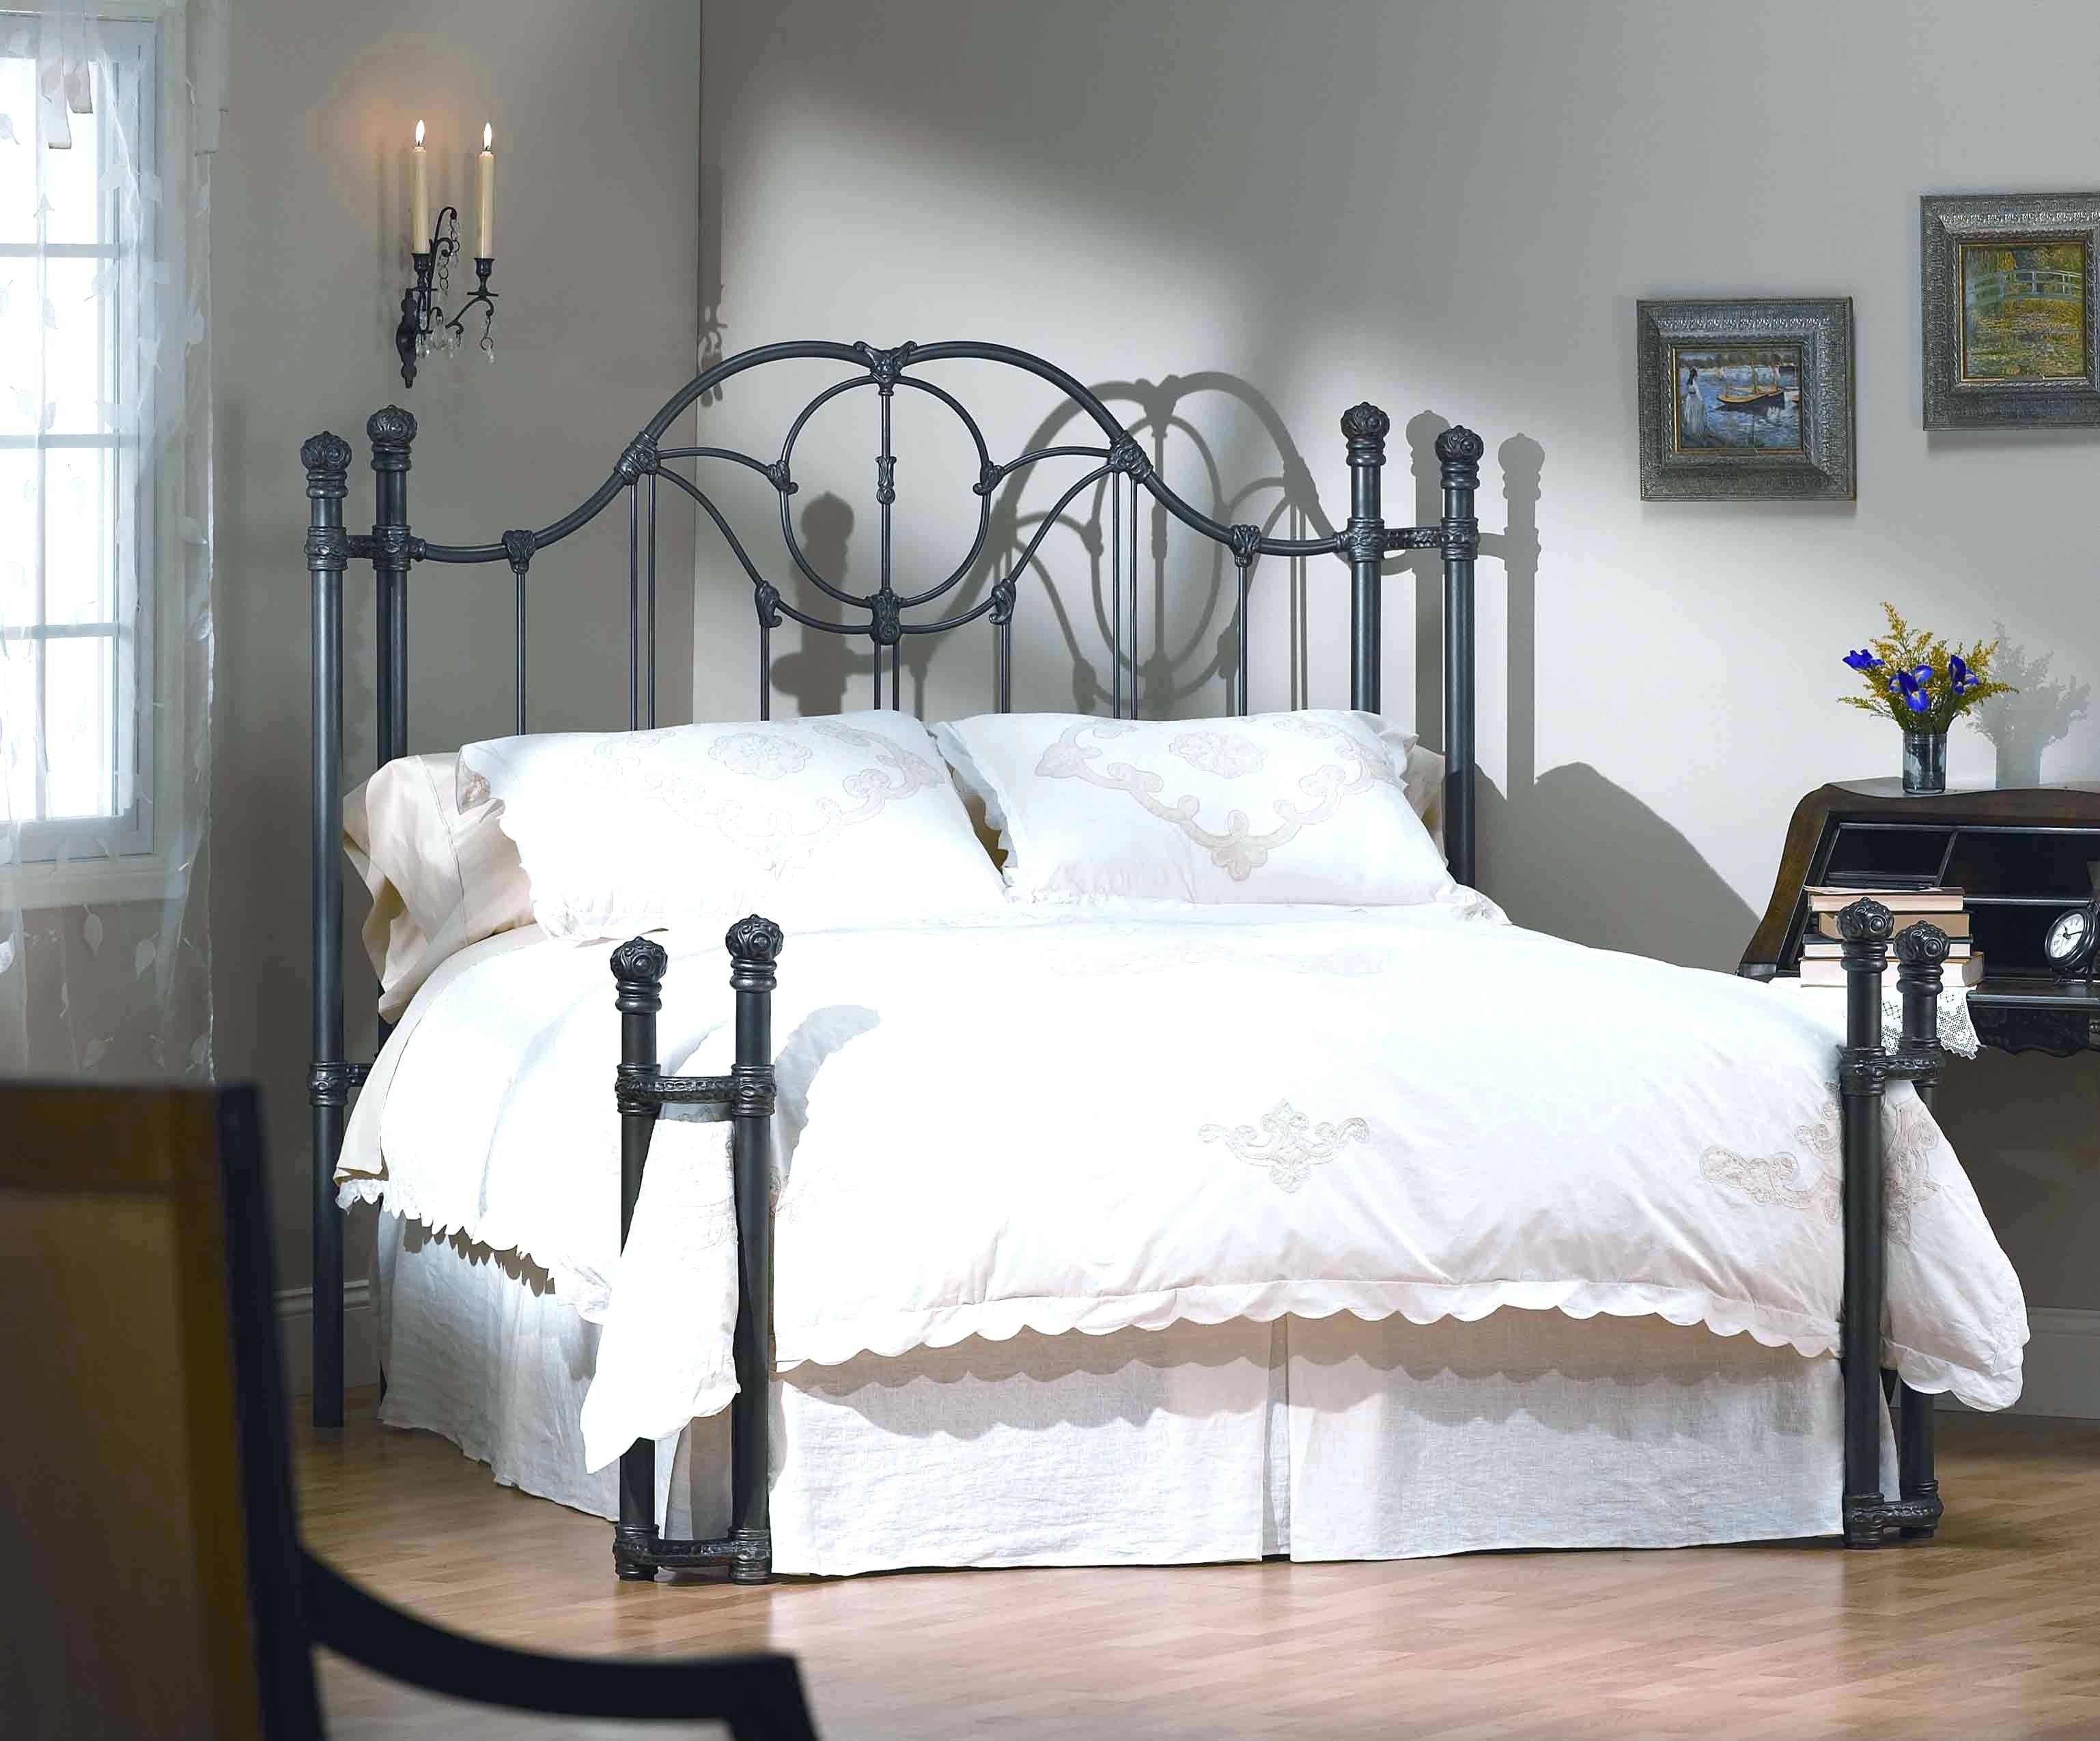 Best sturdy bed frame for sexually active couple